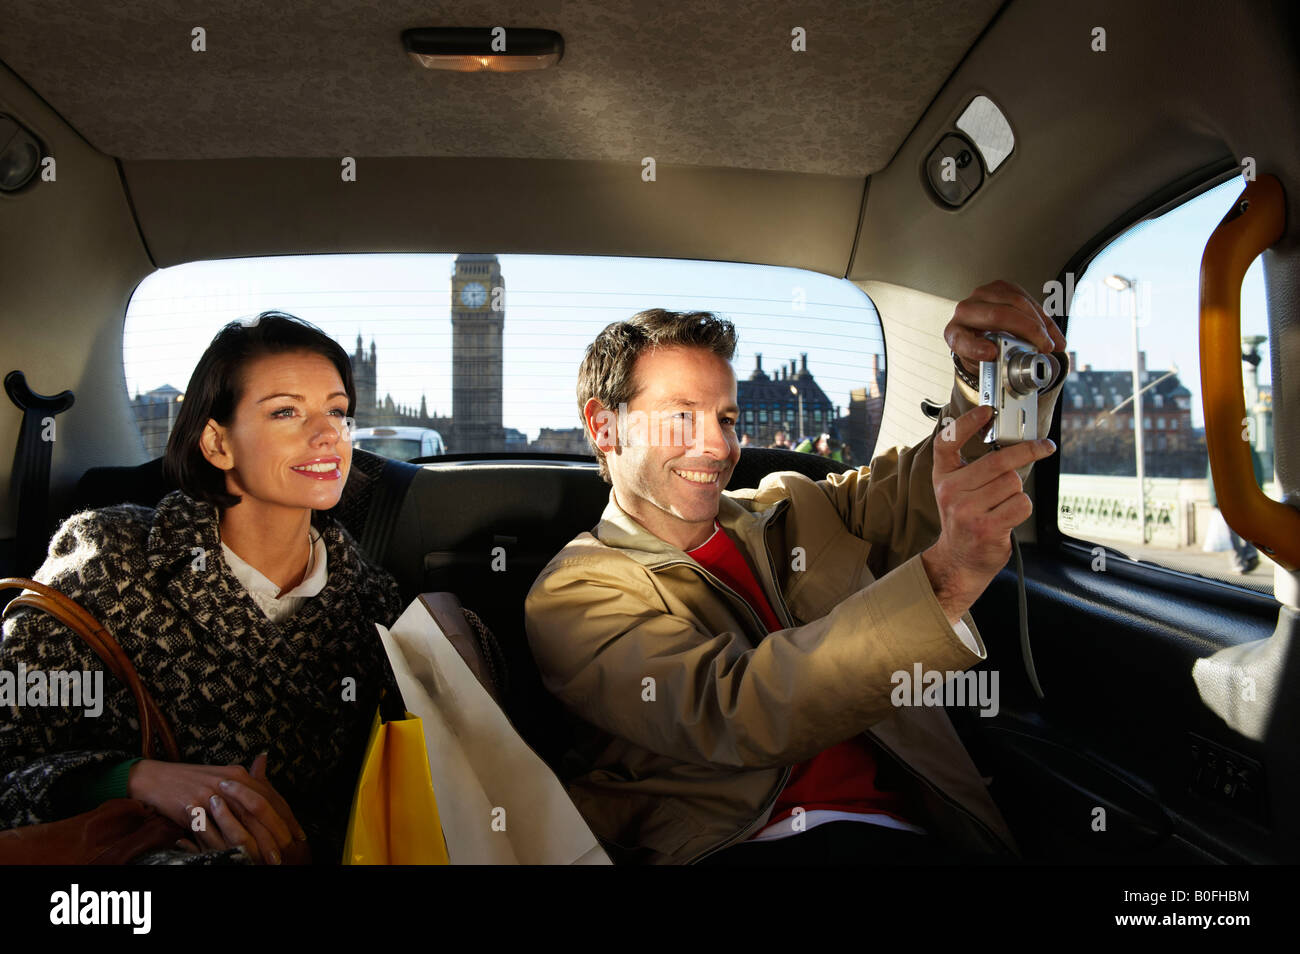 Couple in London taxi, Big Ben in view - Stock Image